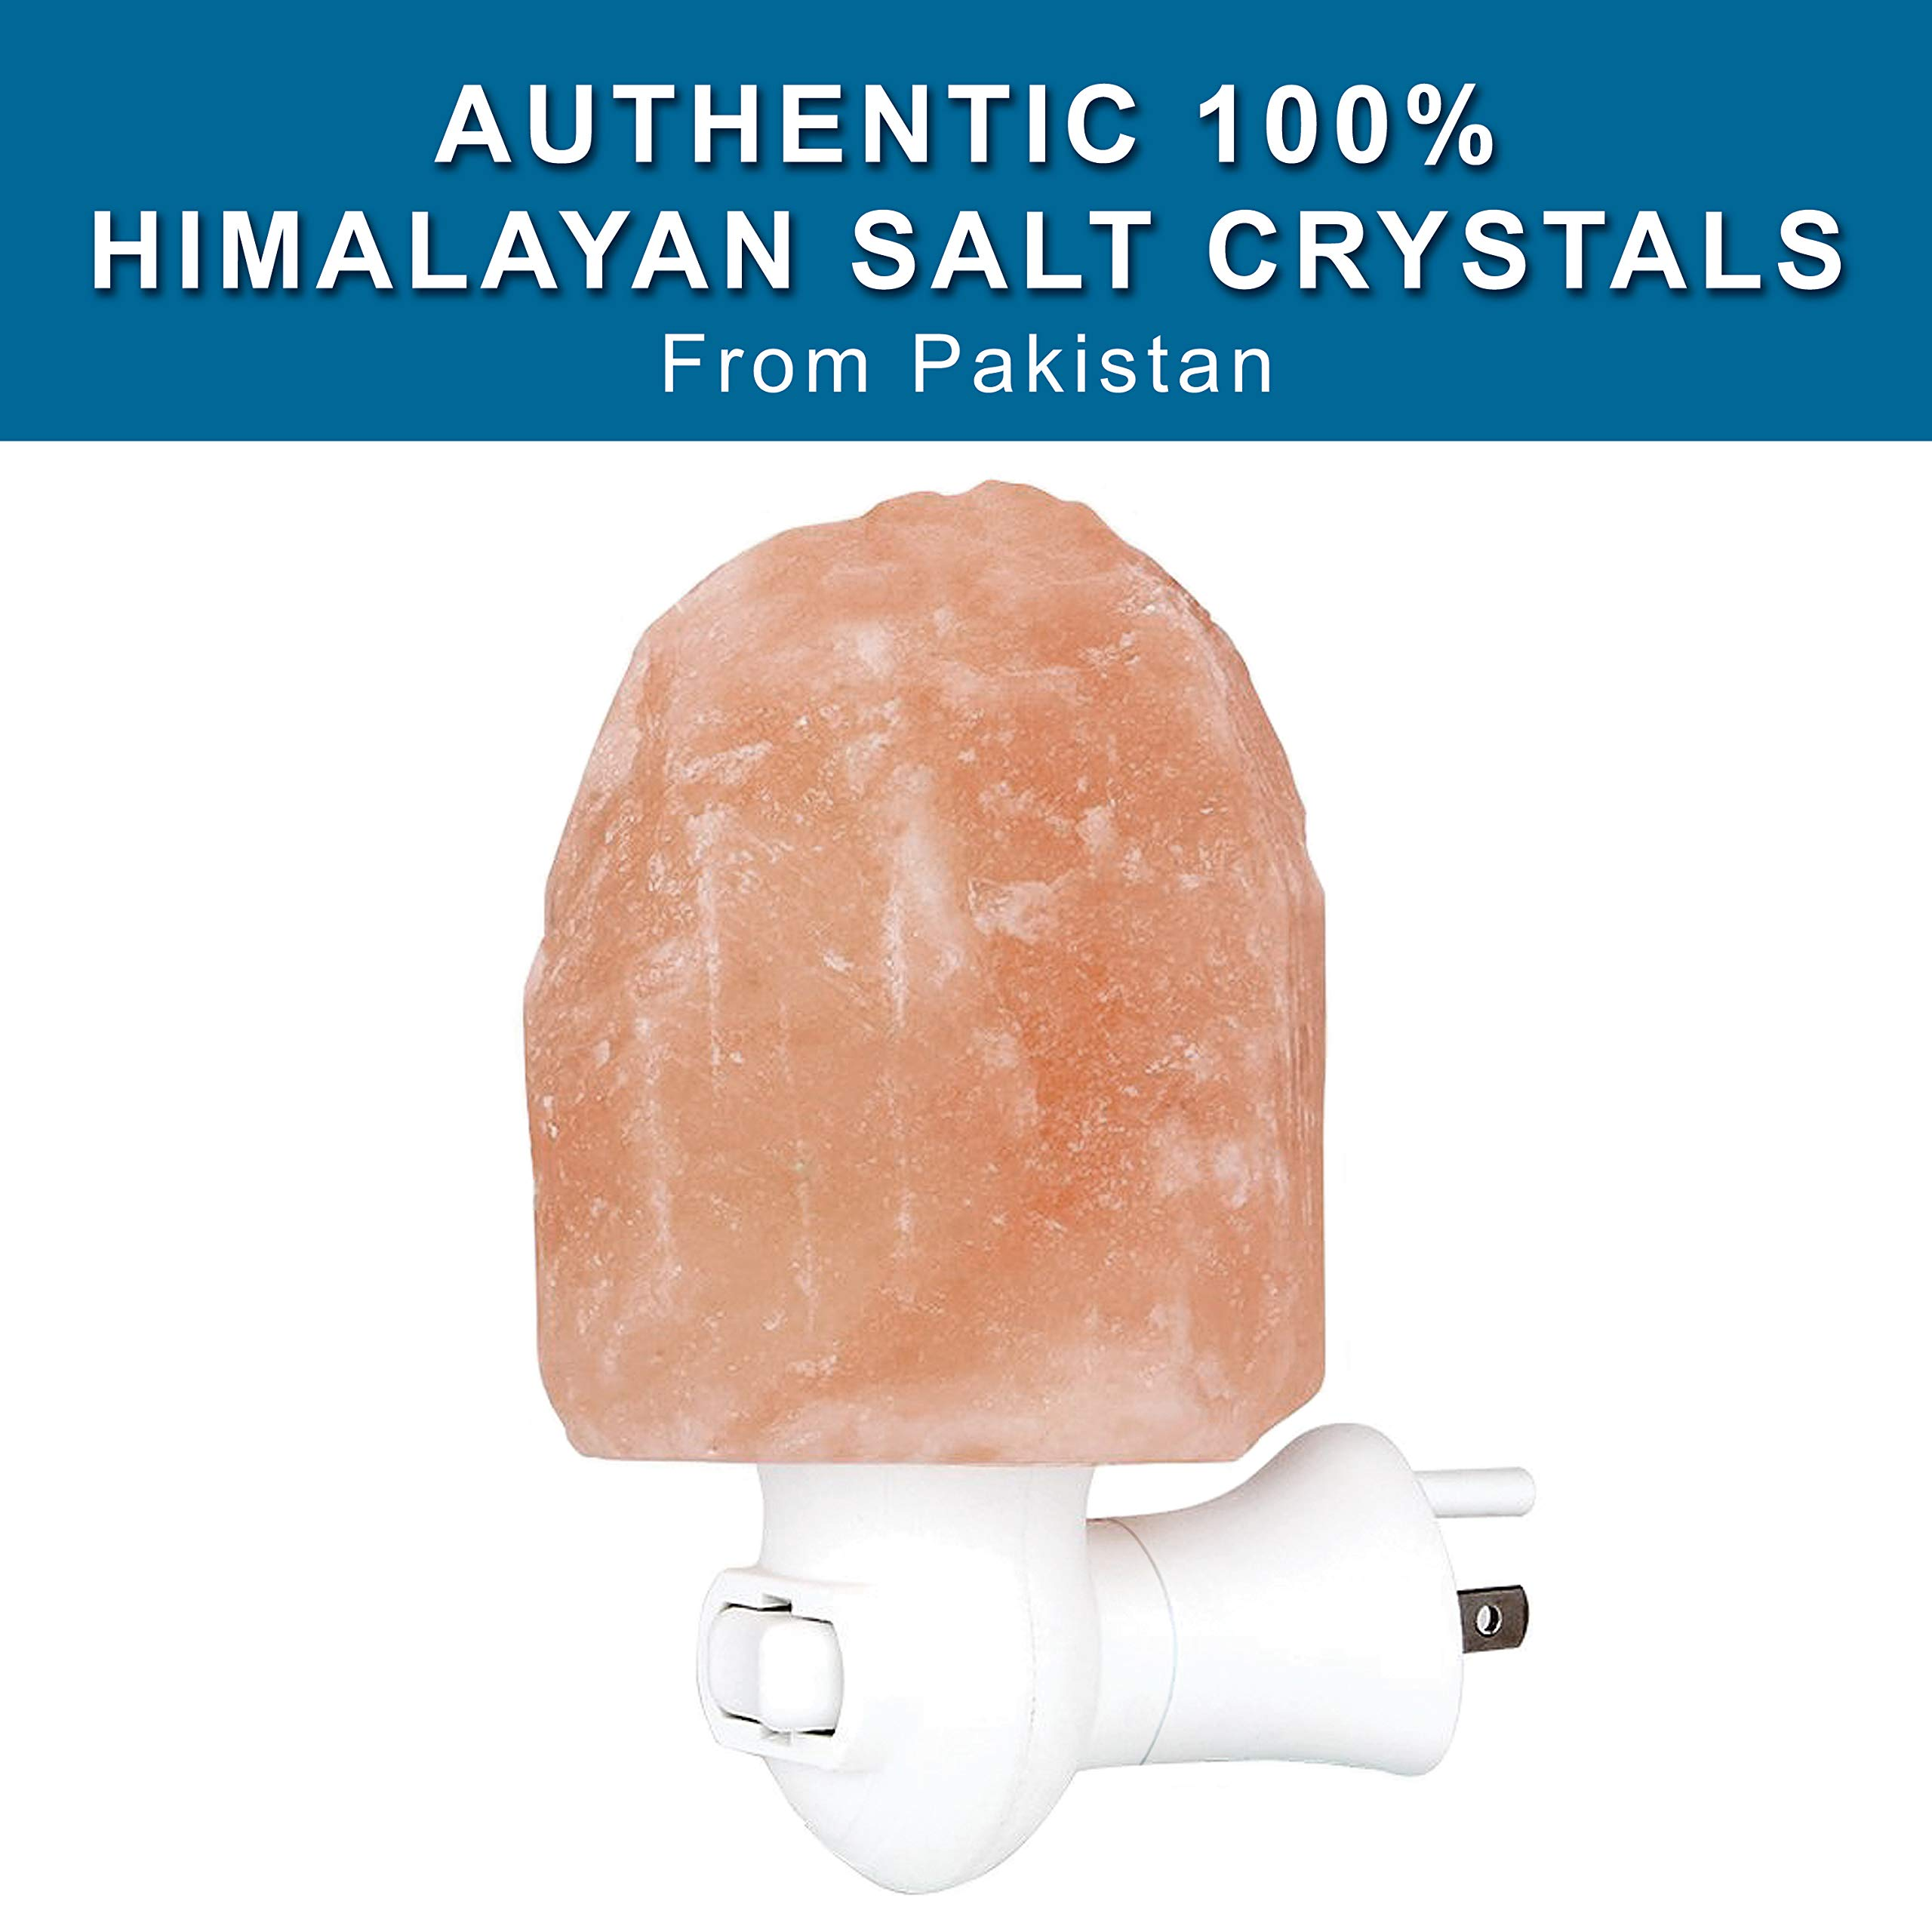 My Perfect Nights Himalayan Rock Salt Lamp Night Light Natural Hand Carved Pure Authentic Pink Salt Crystals from Pakistan use in Bedroom Family Room Hallway Office (2 Pack) by My Perfect Nights (Image #9)